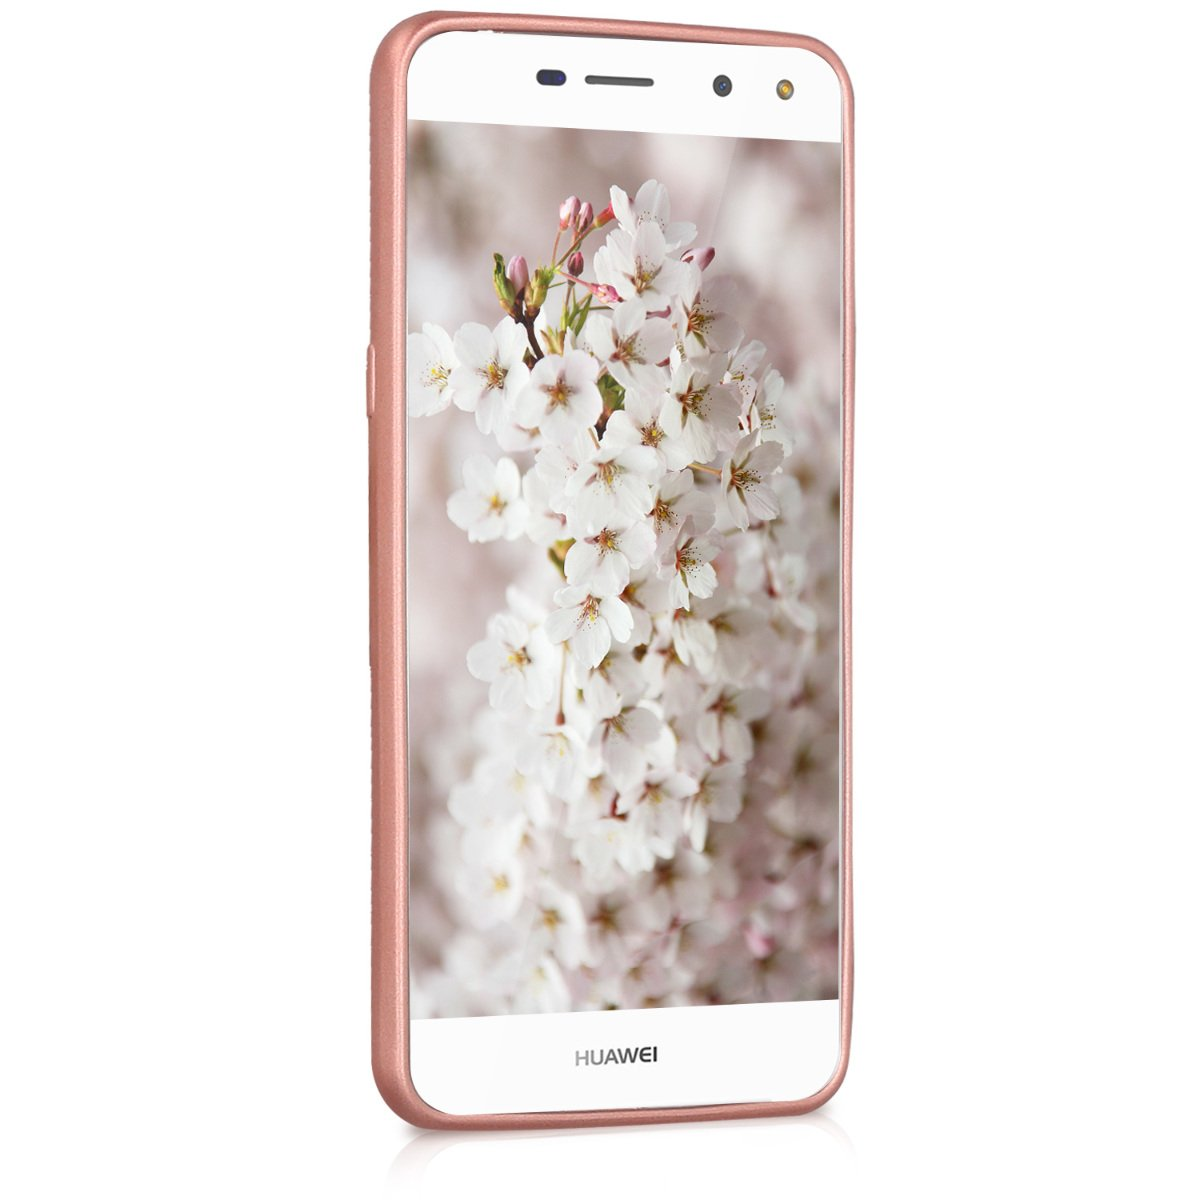 kwmobile TPU Silicone Case for Huawei Y6 (2017) - Soft Flexible Shock Absorbent Protective Phone Cover - Metallic Rose Gold